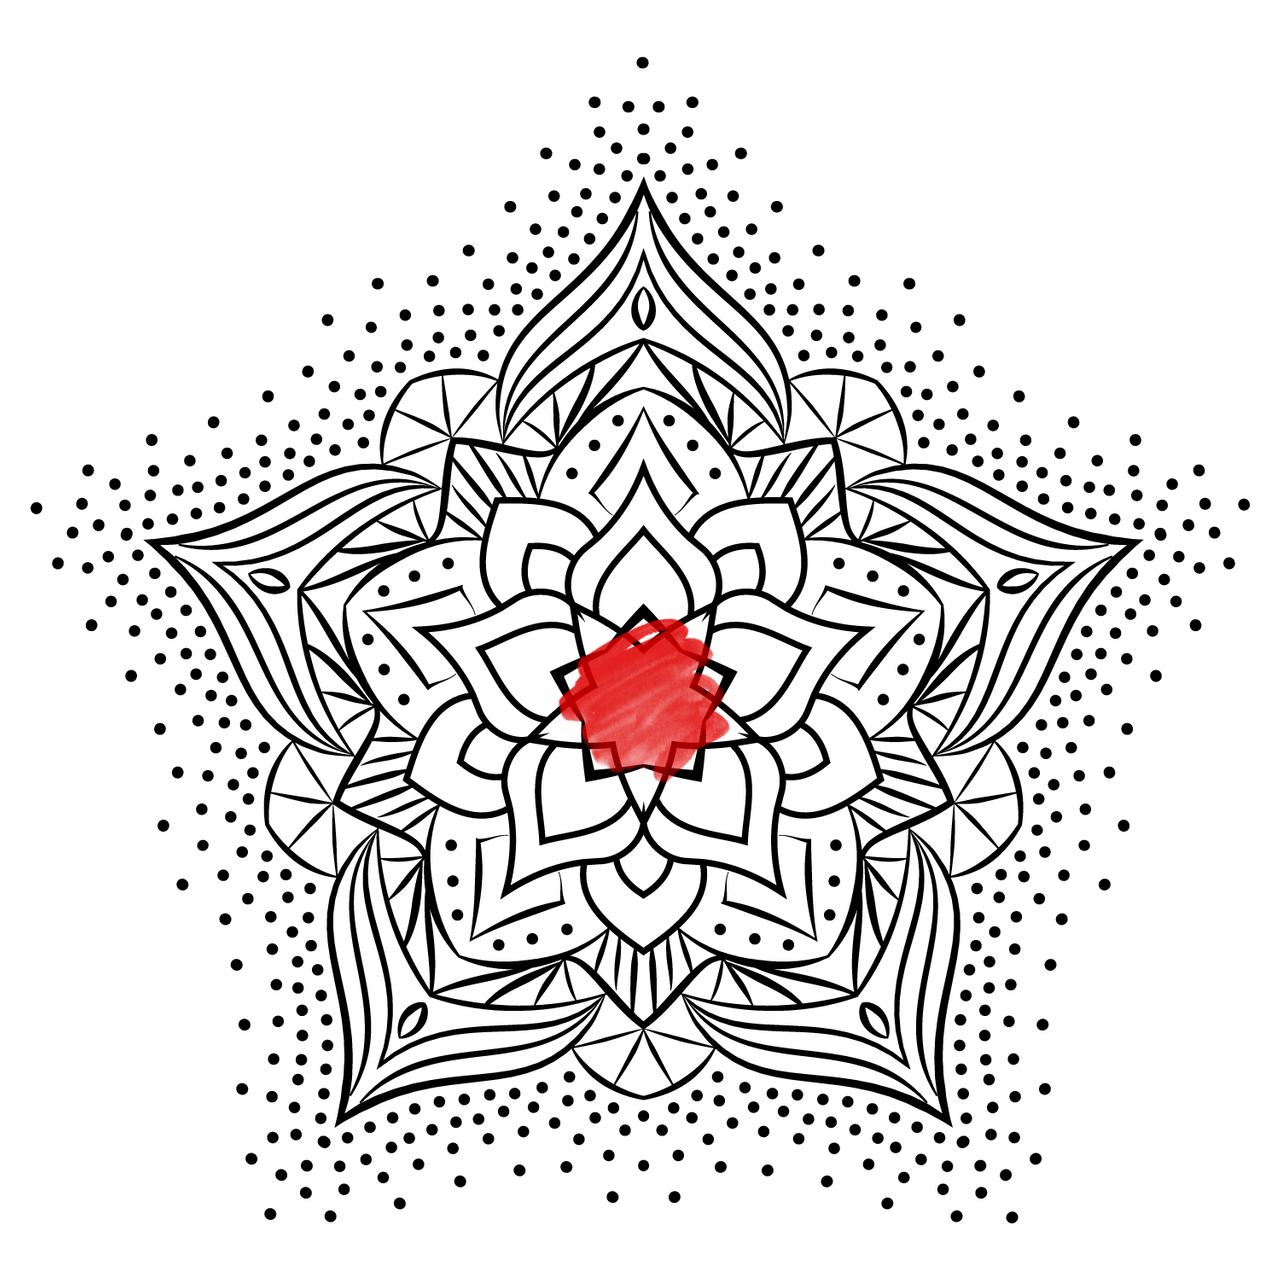 010_Red_Center.png